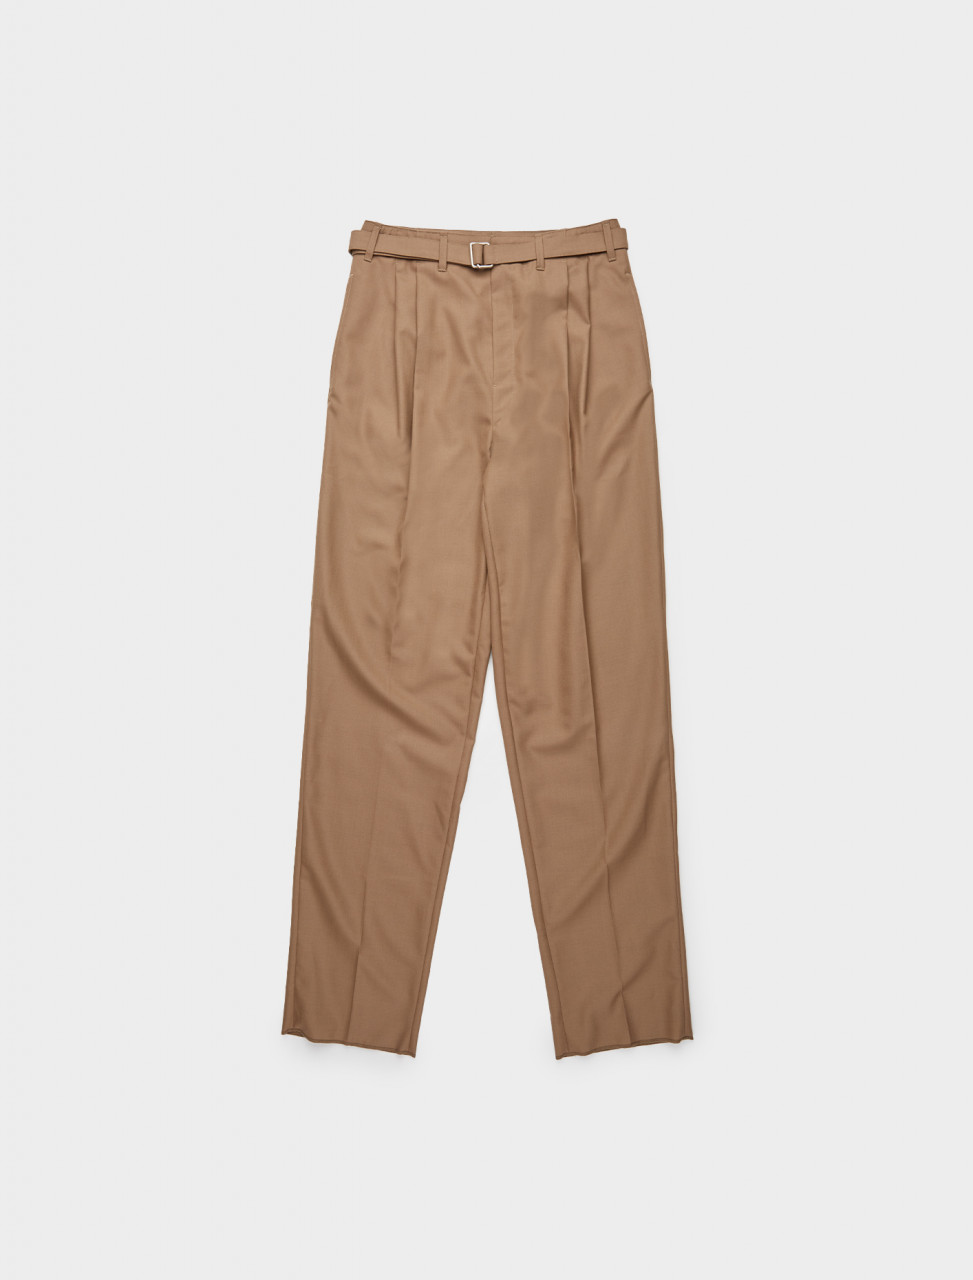 218-M-203-PA151-LF414-409 LEMAIRE BELTED PLEAT PANTS CUB BROWN